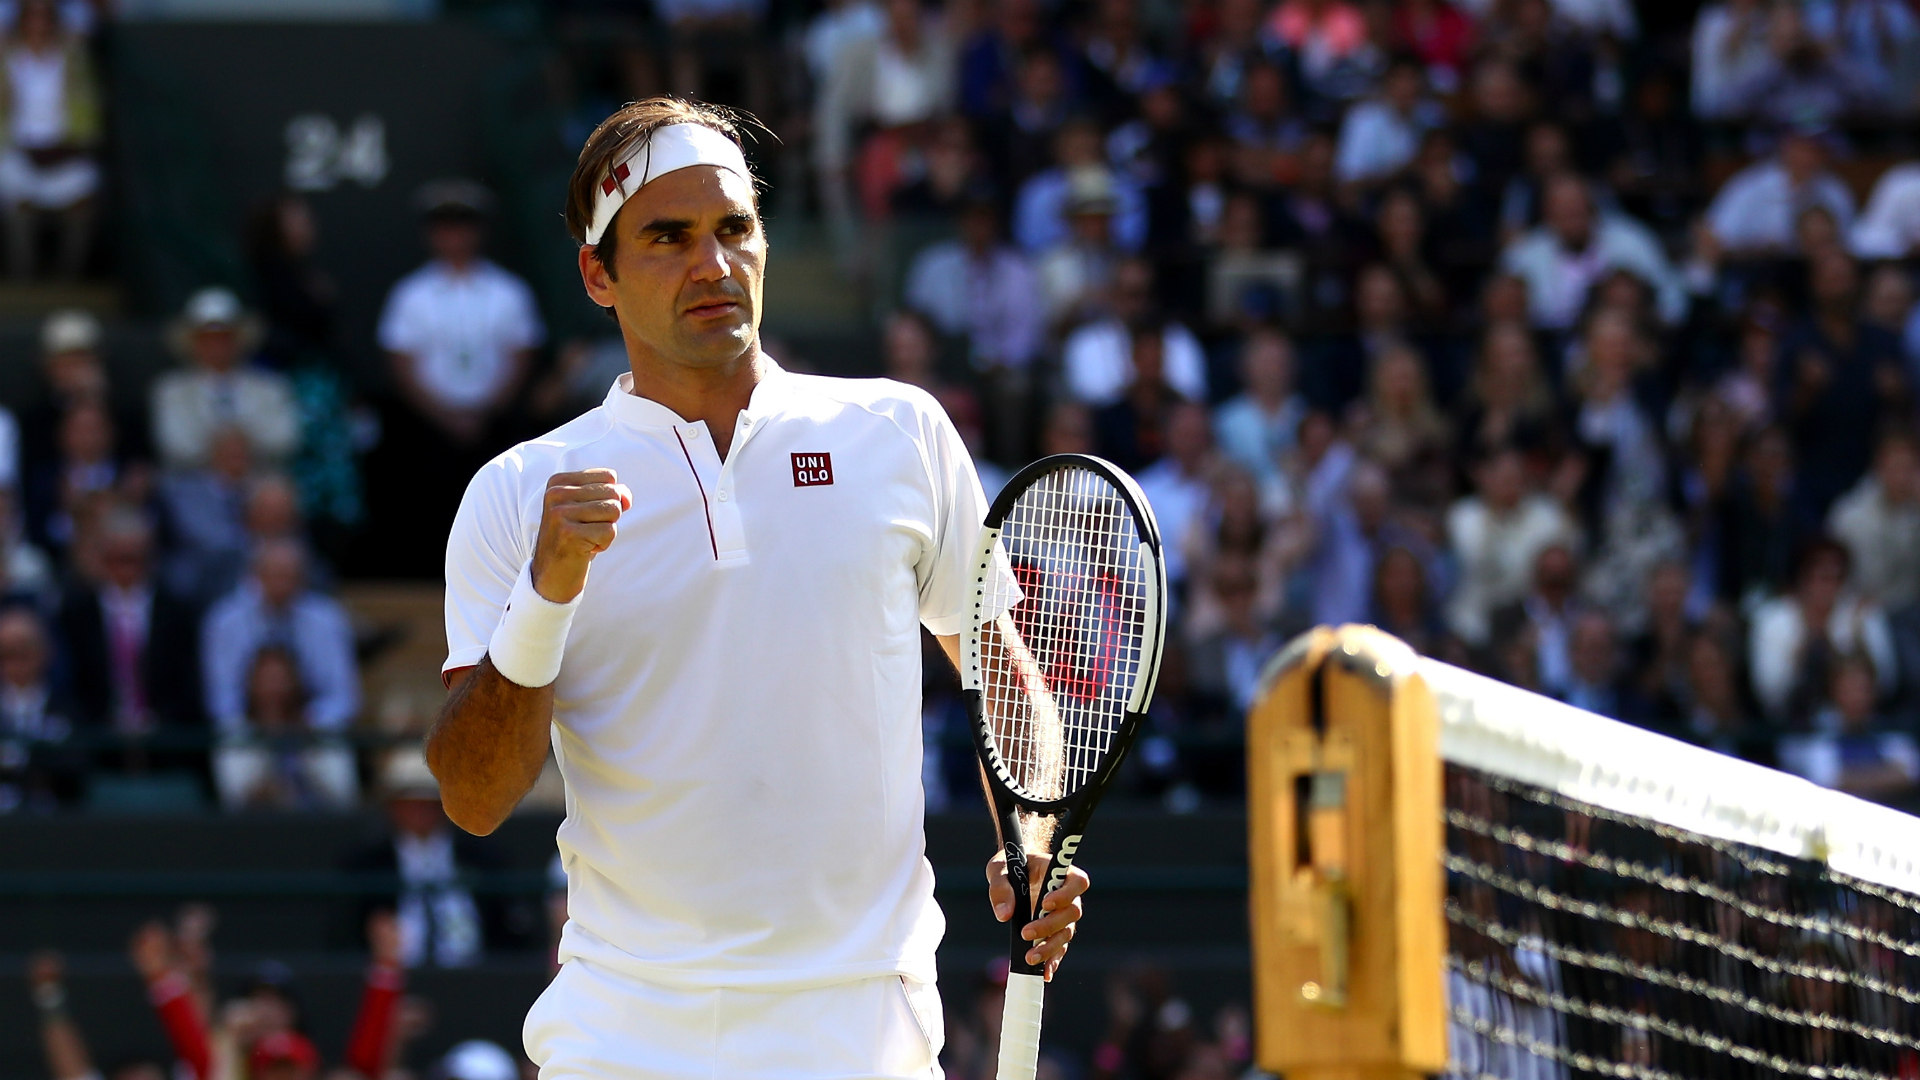 Rafael Nadal had revealed the announcement early and Wimbledon confirmed the Spaniard will be seeded behind Roger Federer this year.